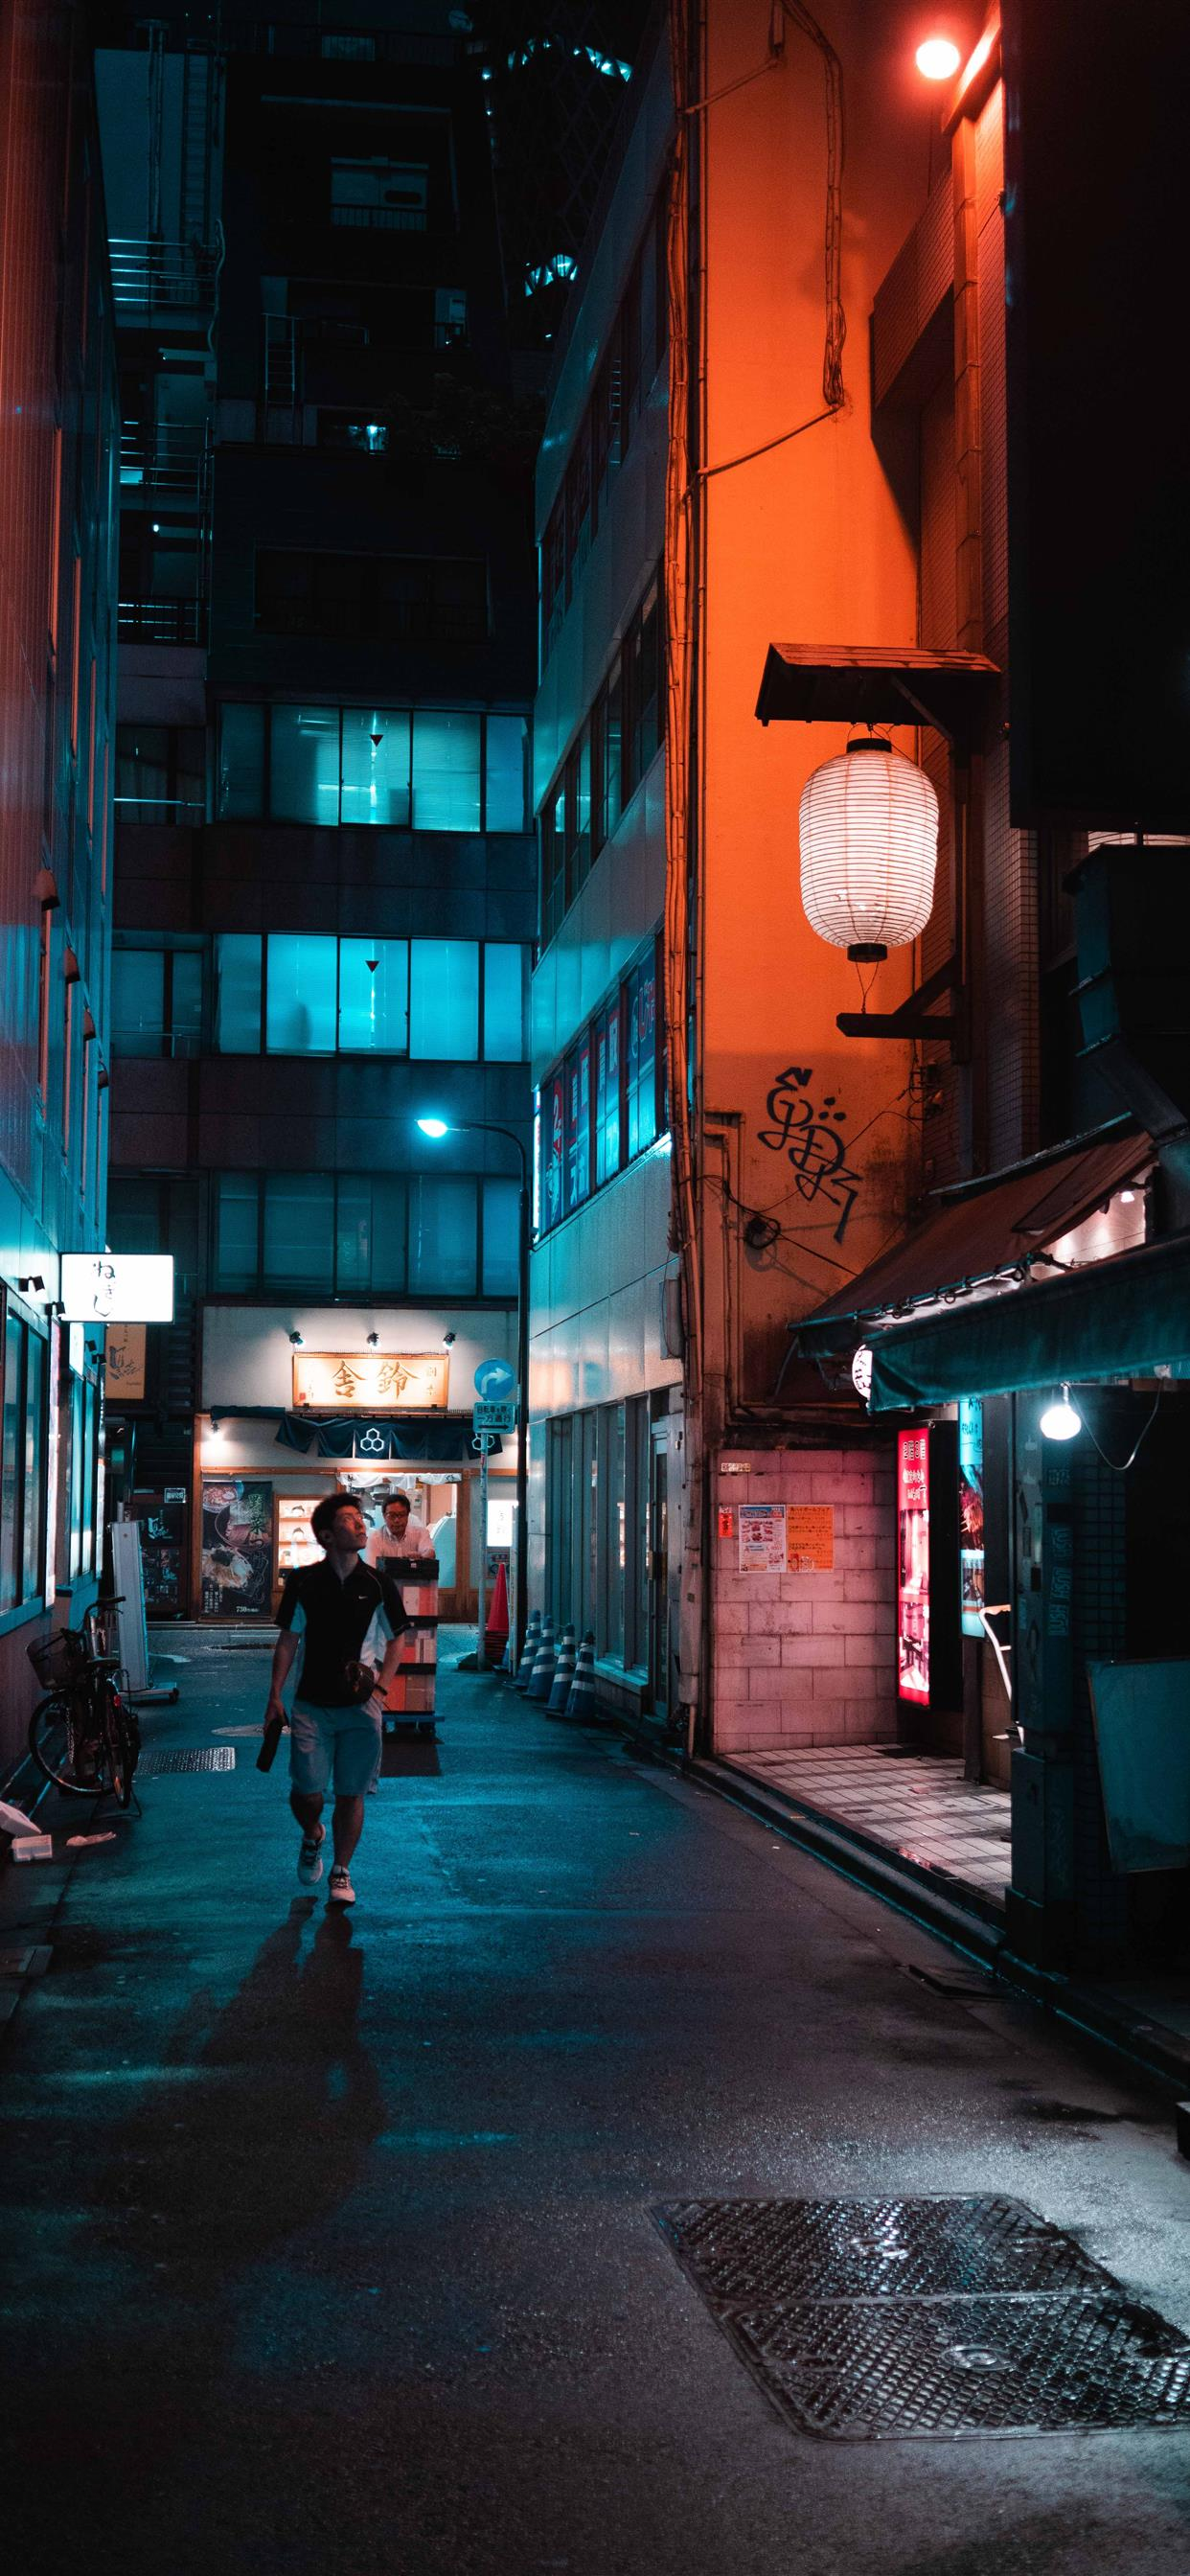 Tokyo Iphone Wallpapers Free Download